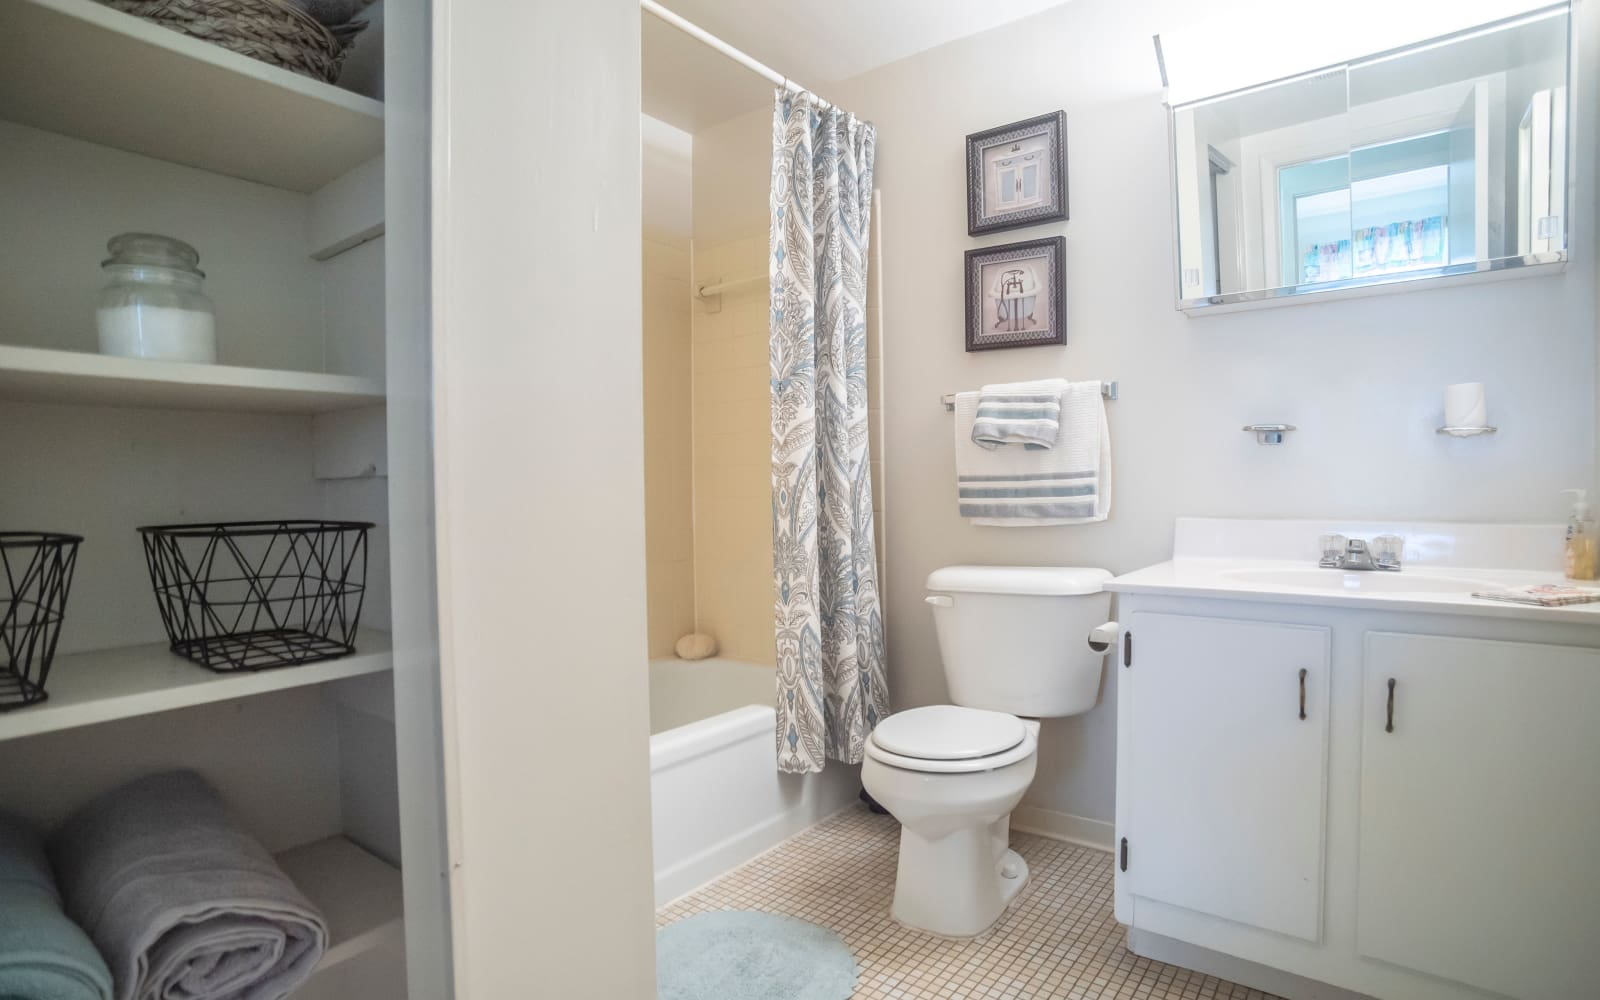 Bathroom with storage space for towels at Hunt Club Apartments in Cockeysville, Maryland